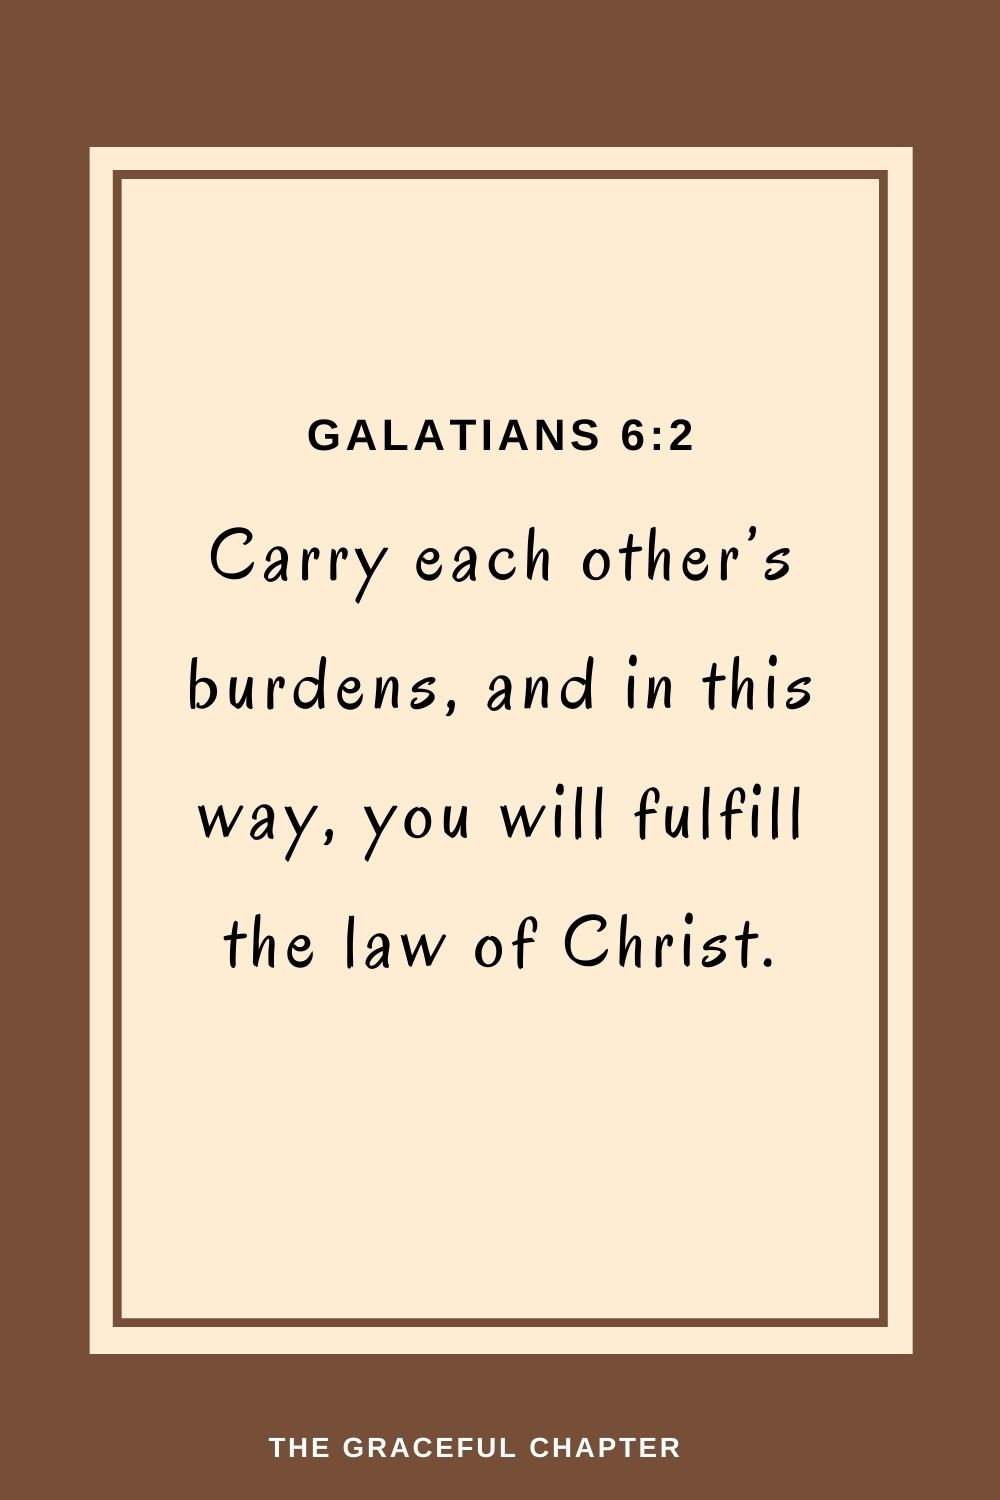 Carry each other's burdens, and in this way, you will fulfill the law of Christ.Carry each other's burdens, and in this way, you will fulfill the law of Christ. Galatians 6:2